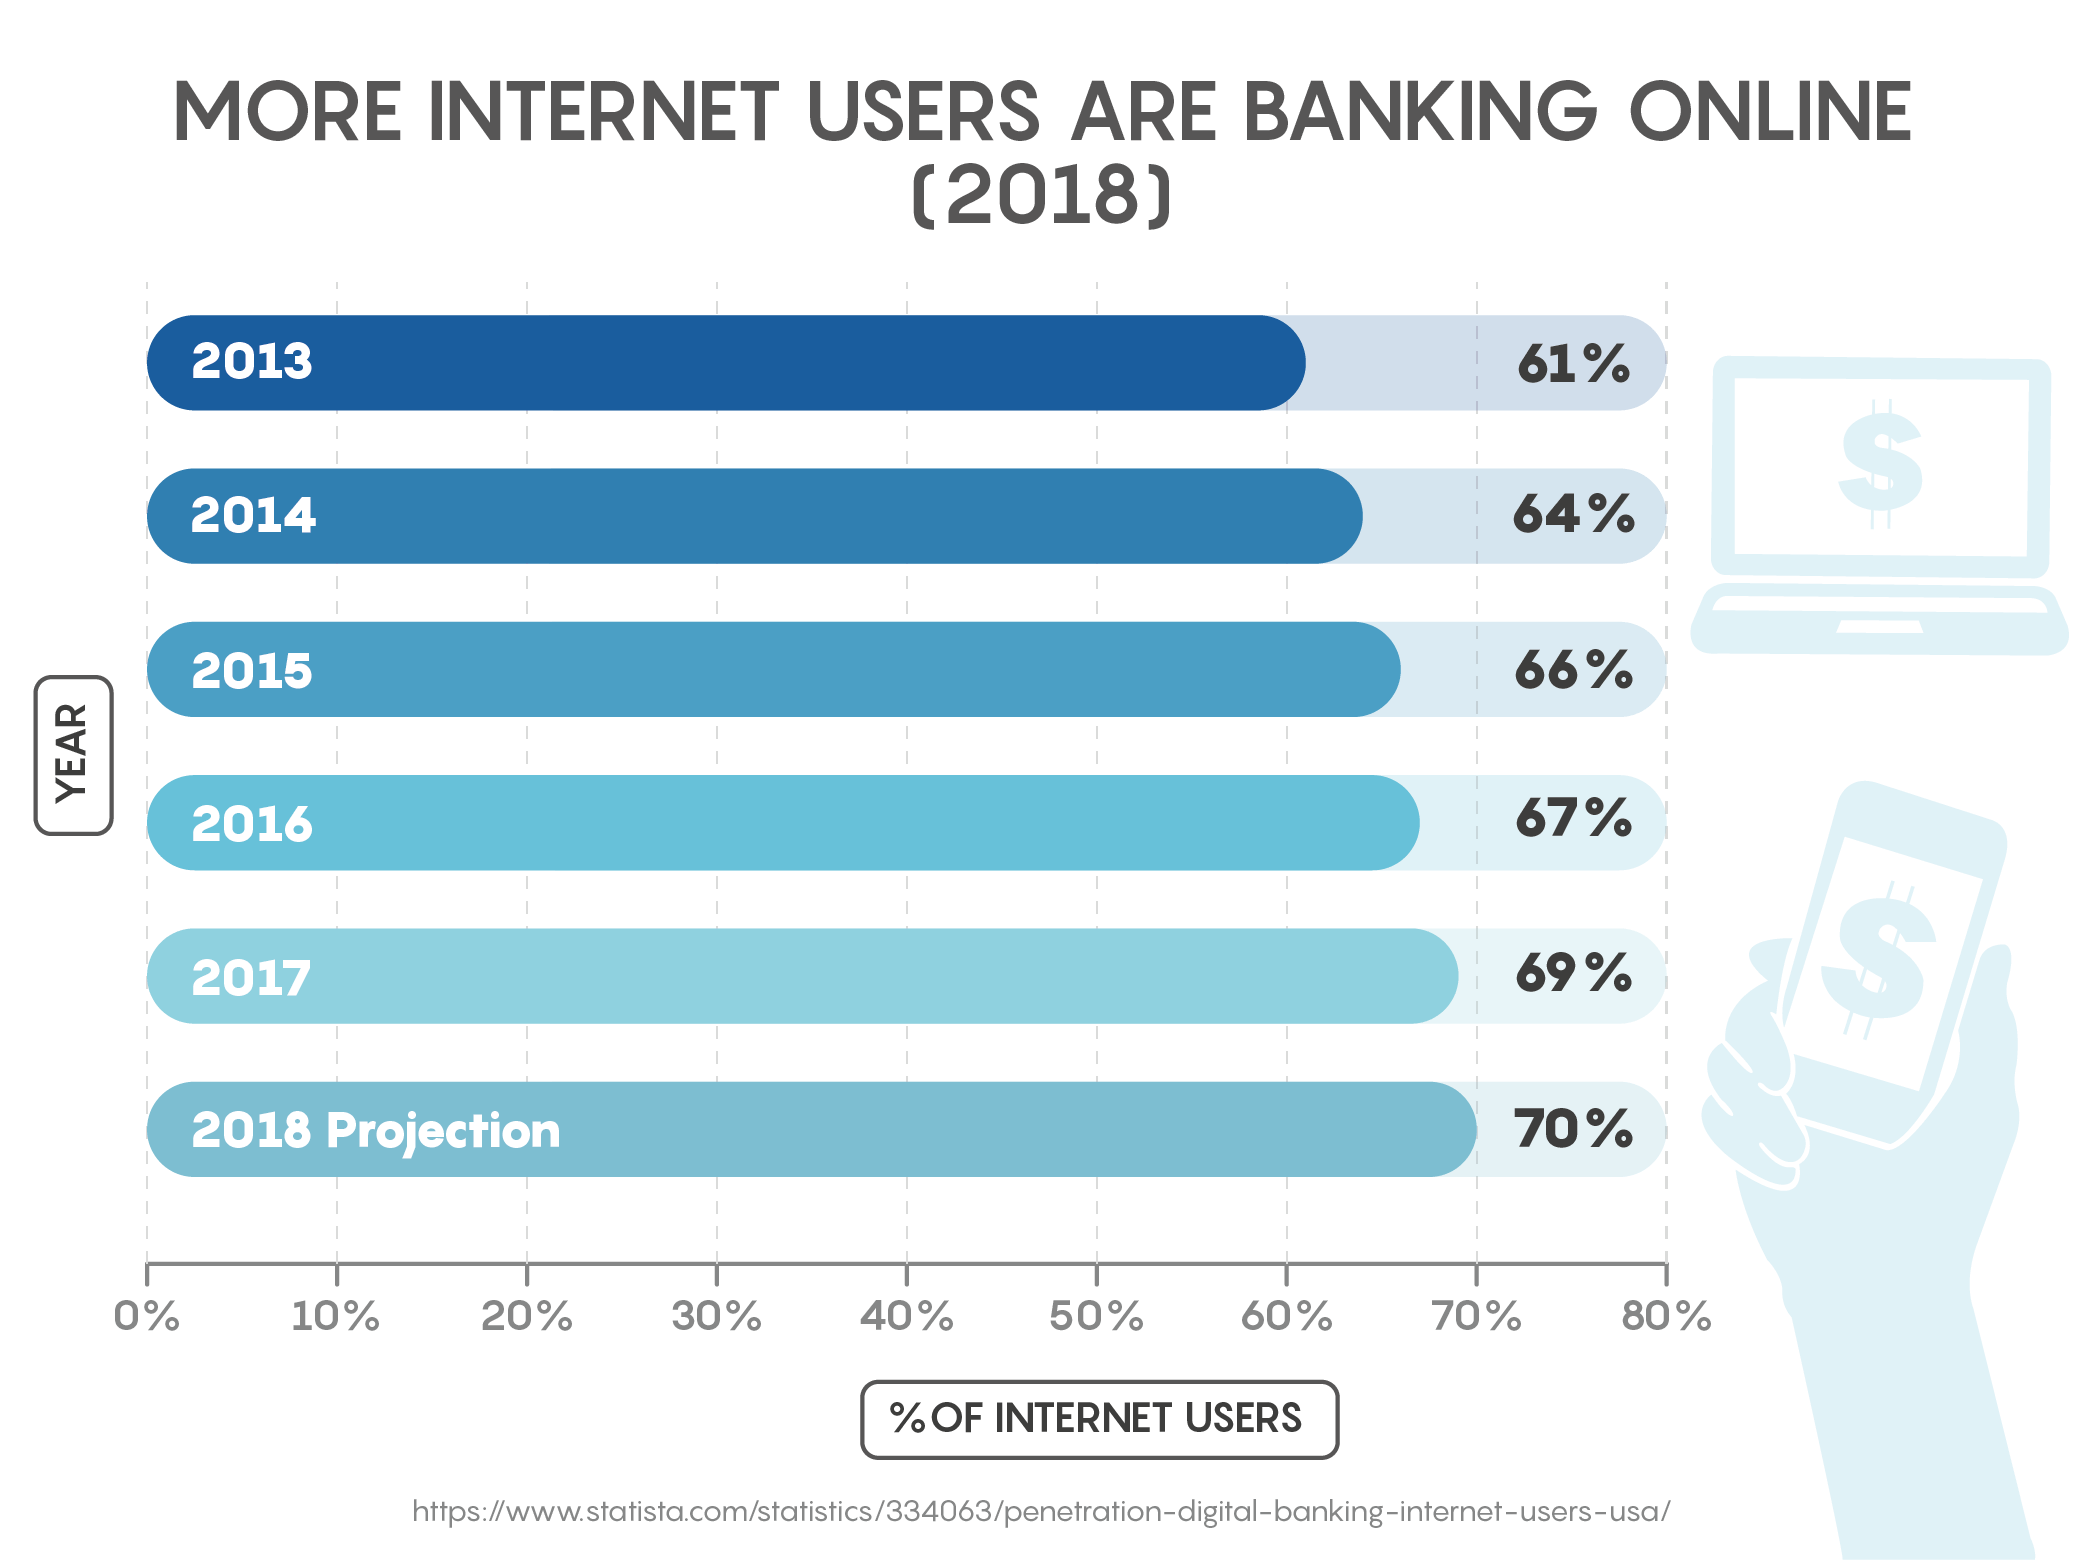 More Internet Users are Banking Online (2018)